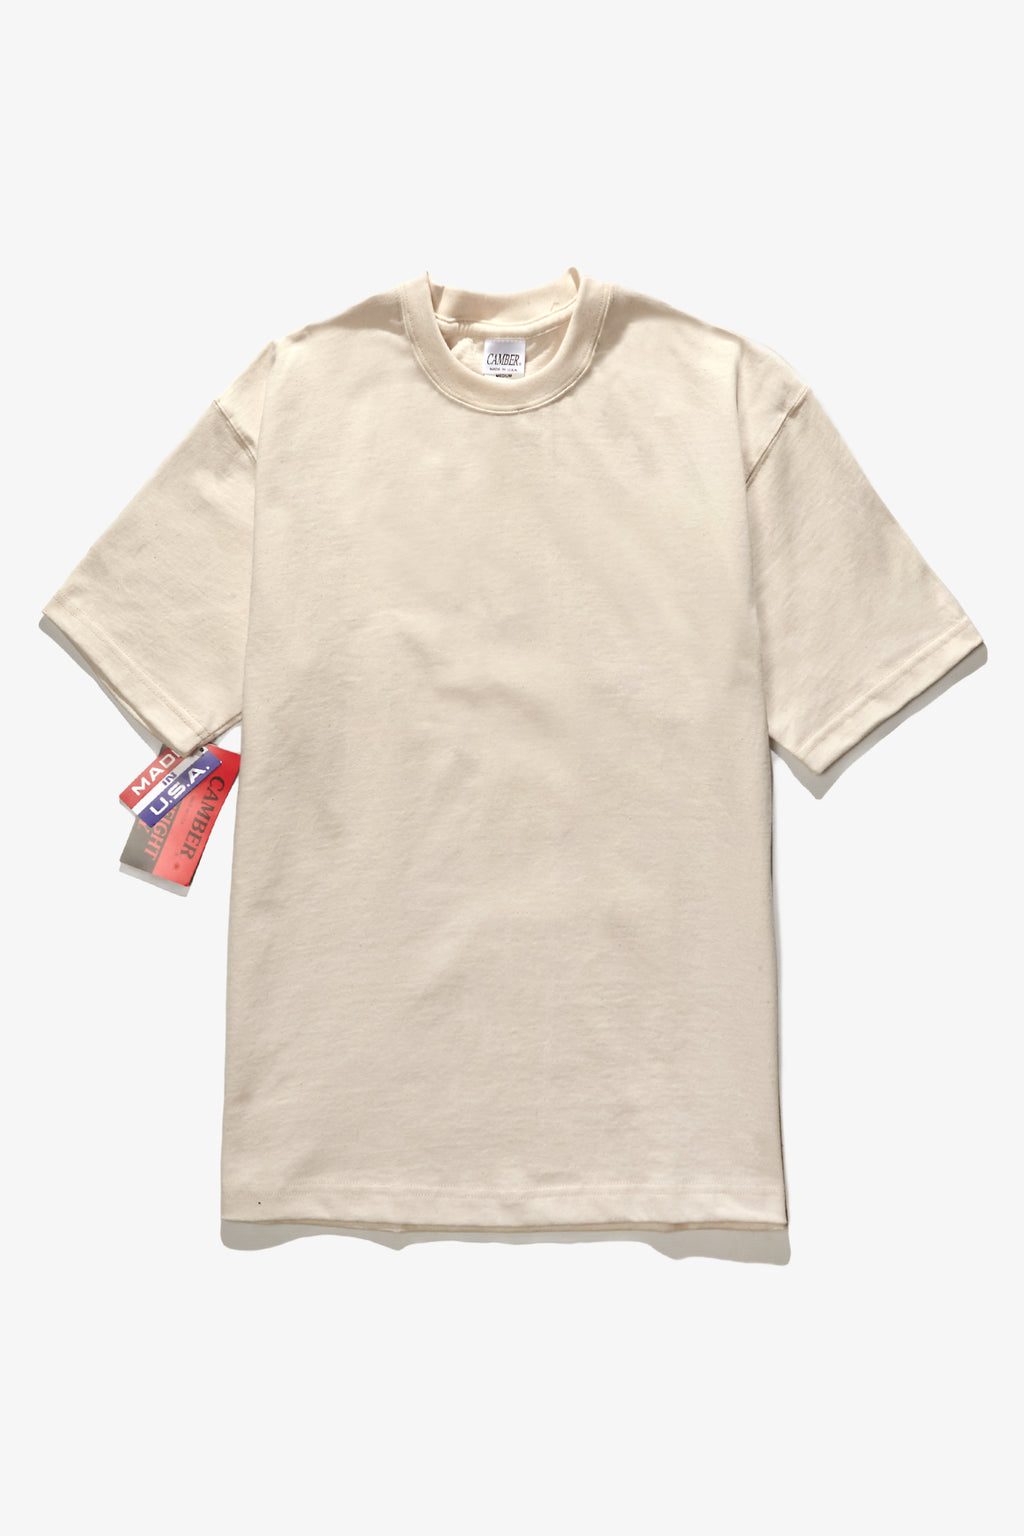 Camber USA - 301 8oz Tee - Natural